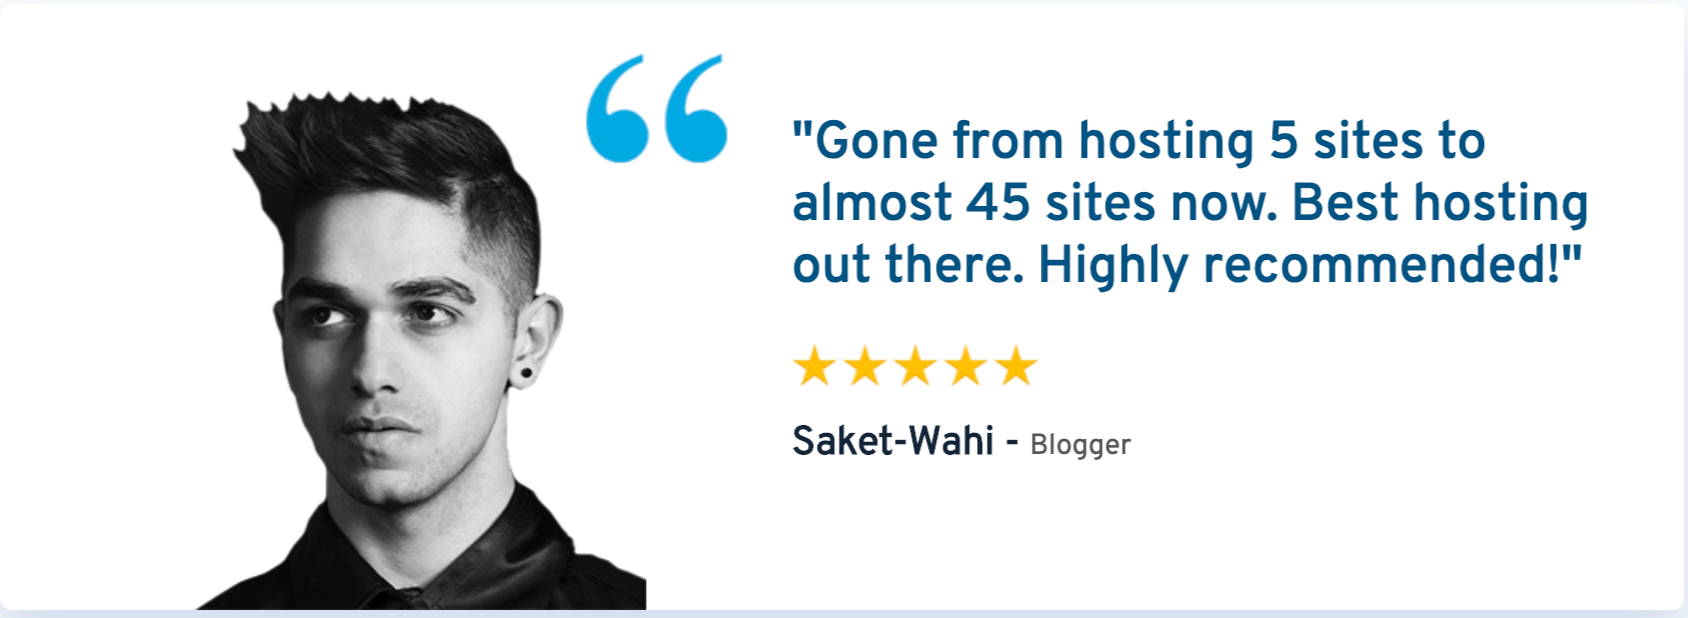 Seeka Host Customer Review